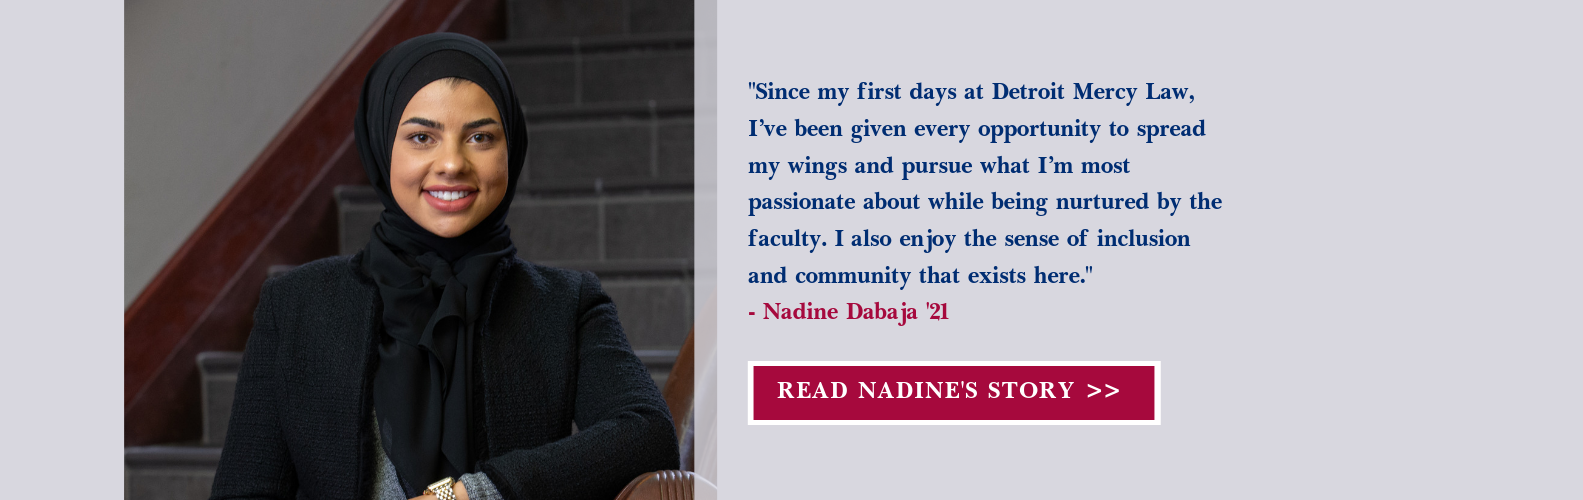 Nadine Dabaja on Detroit Mercy Law staircase